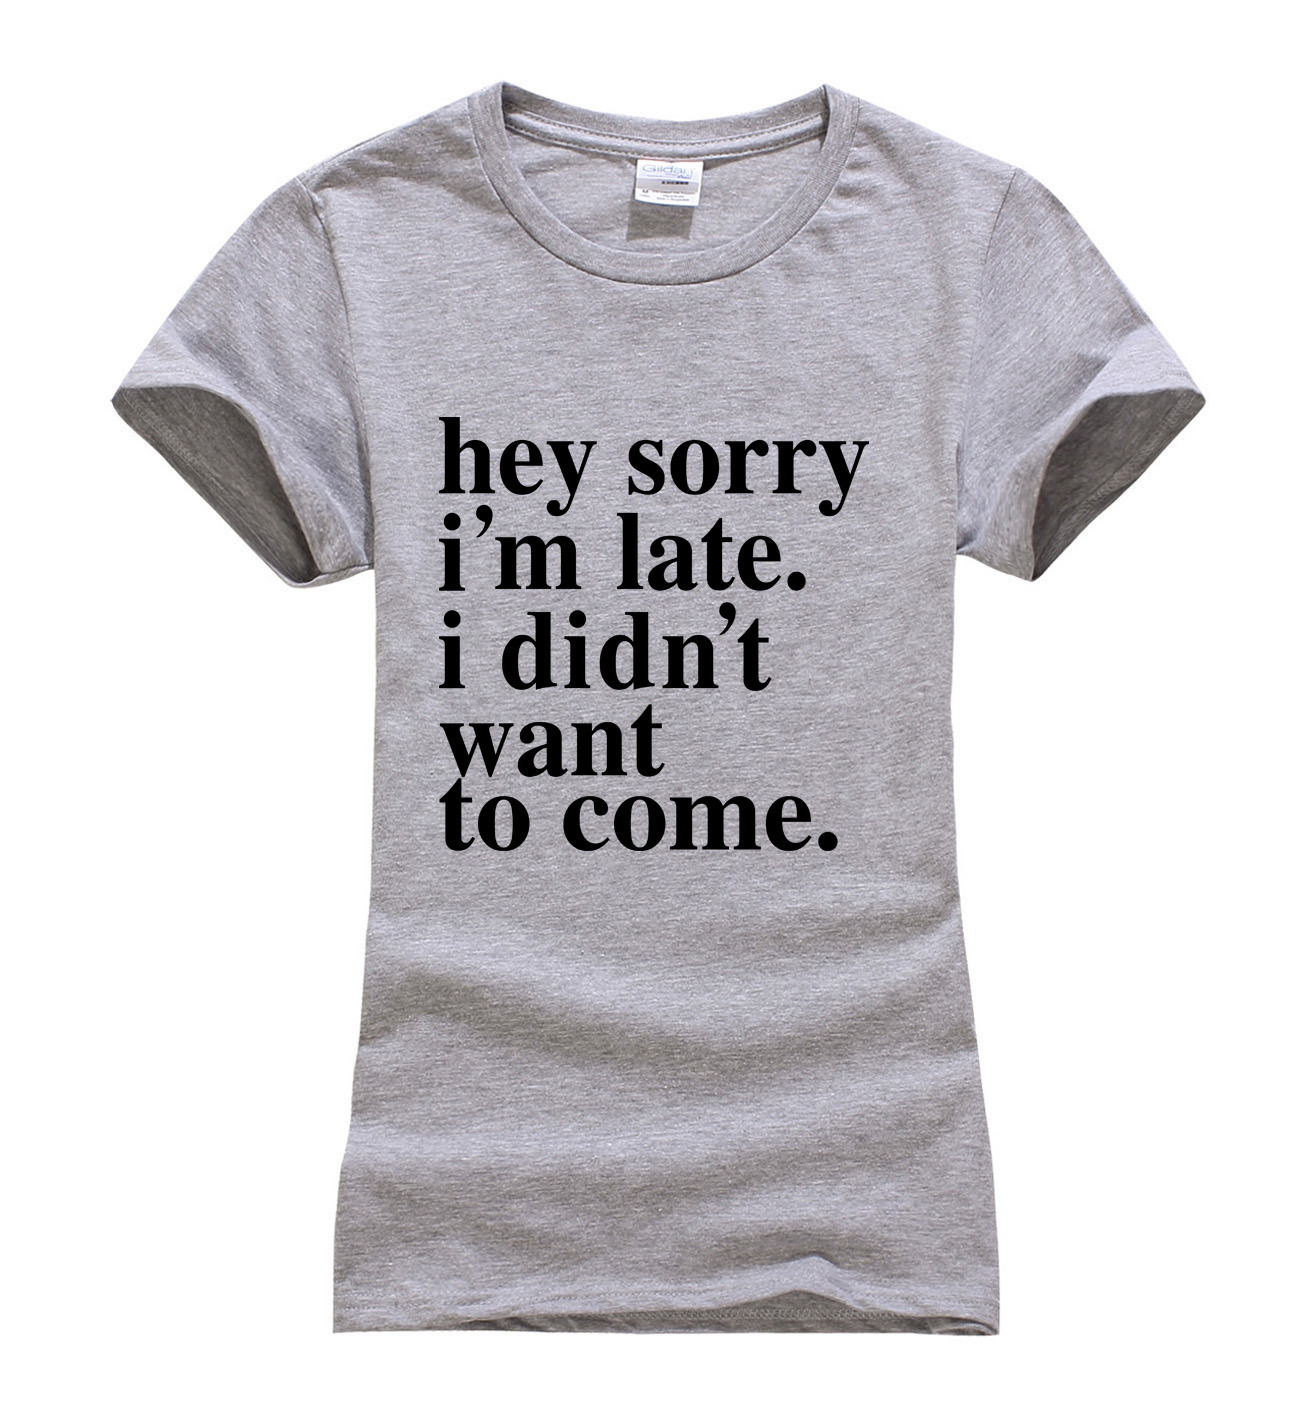 c691d3558 Hey sorry I'm late. I didn't want to come. funny t shirt 2017 summer new  arrival novelty t shirt women brand cotton tops tees-in T-Shirts from  Women's ...